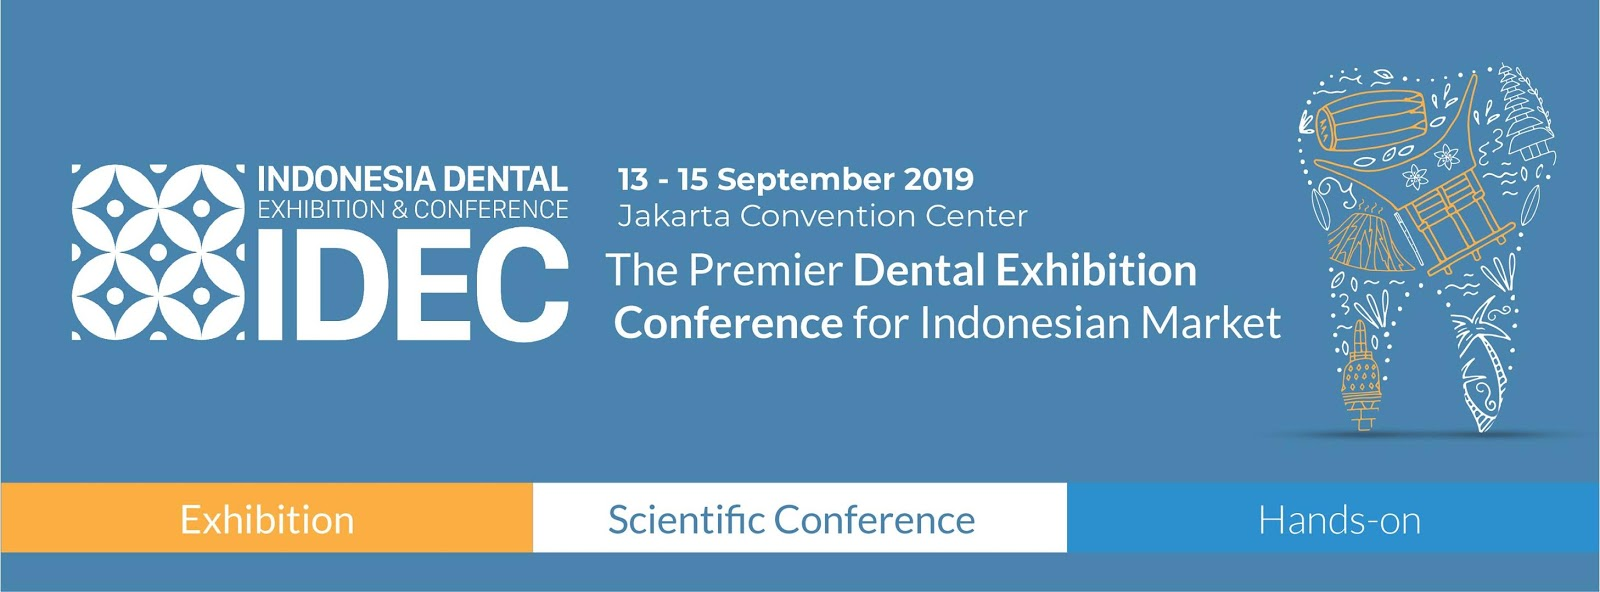 Indonesia Dental Exhibition and Conference (IDEC)